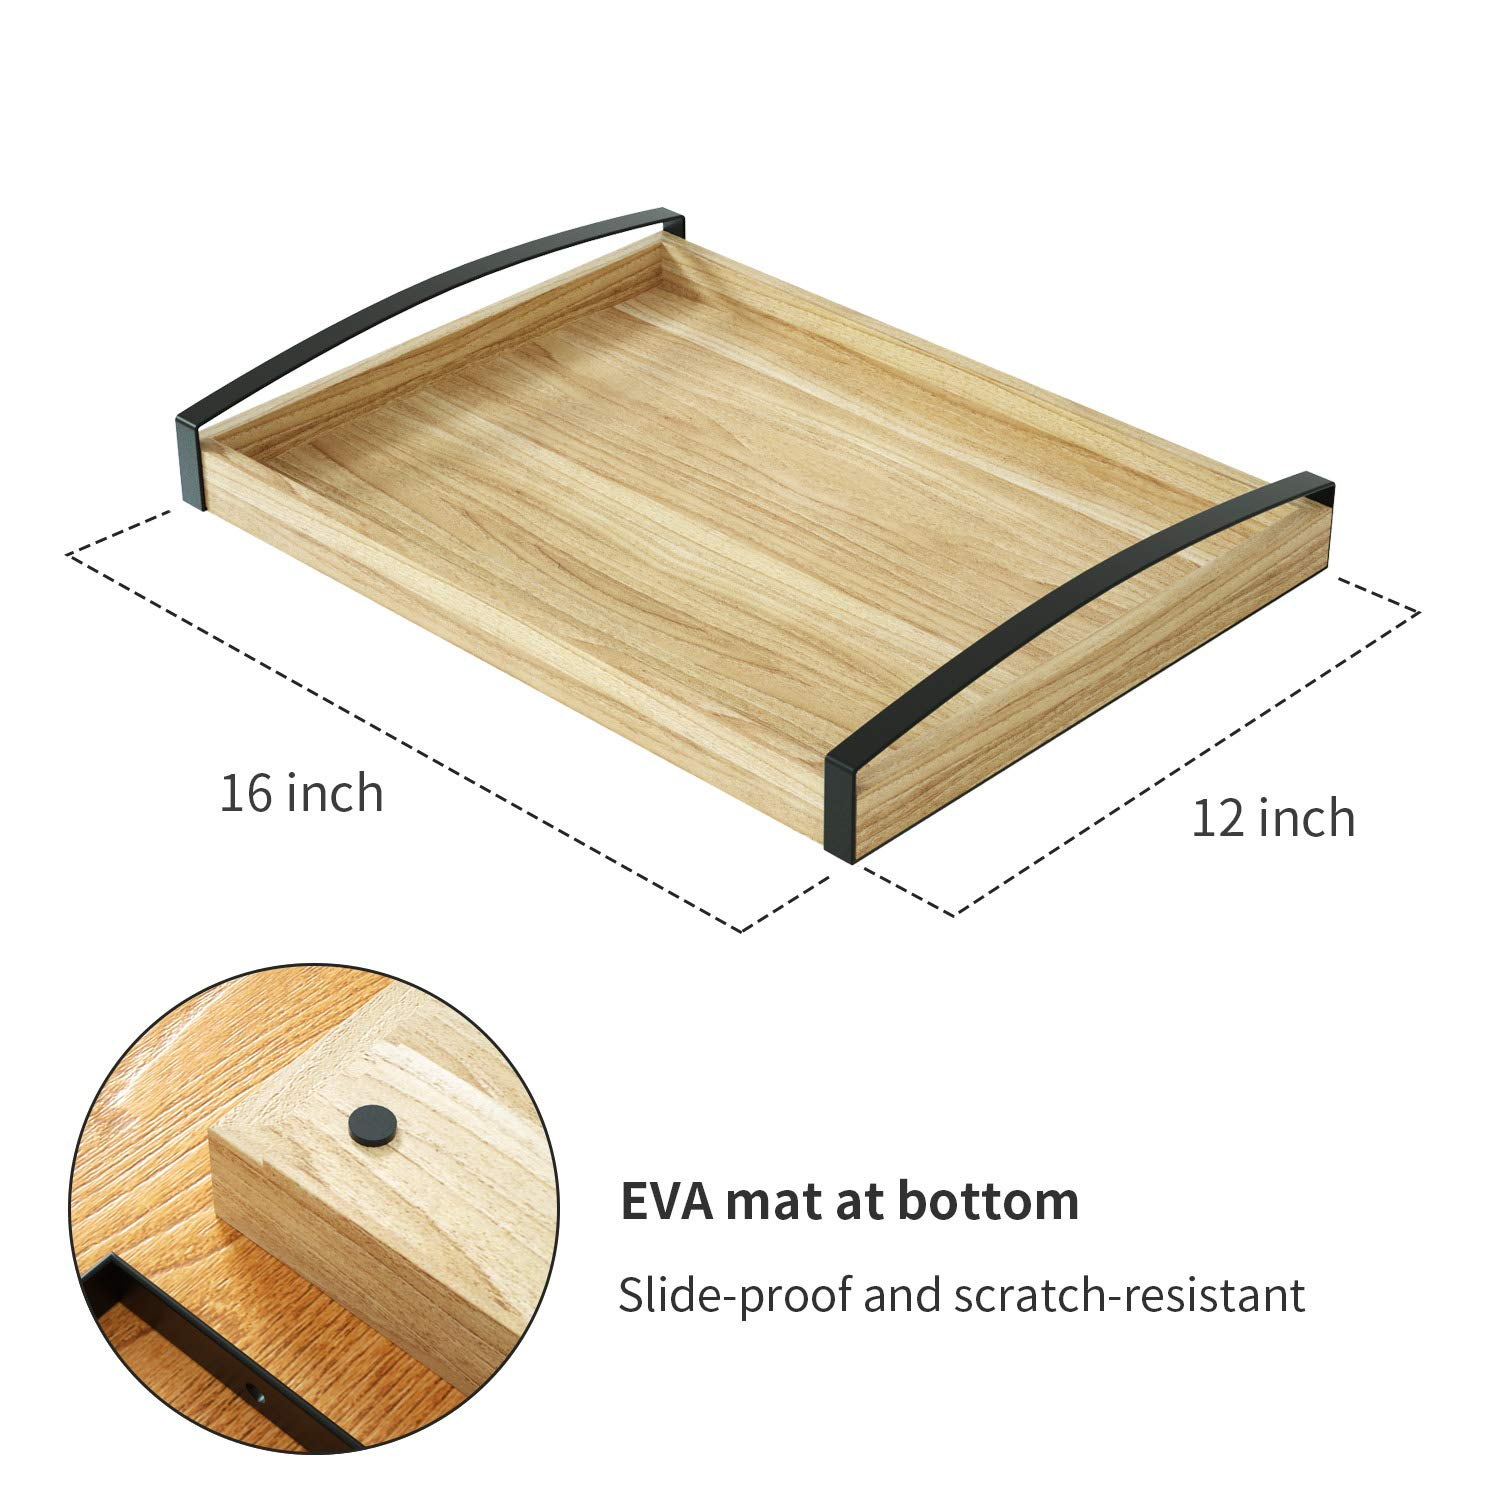 Love-KANKEI Wood Serving Tray with Metal Handle - Rectangle Breakfast Tray for Bed Ottoman Dinner Party 16 x 12 inch by Love-KANKEI (Image #6)